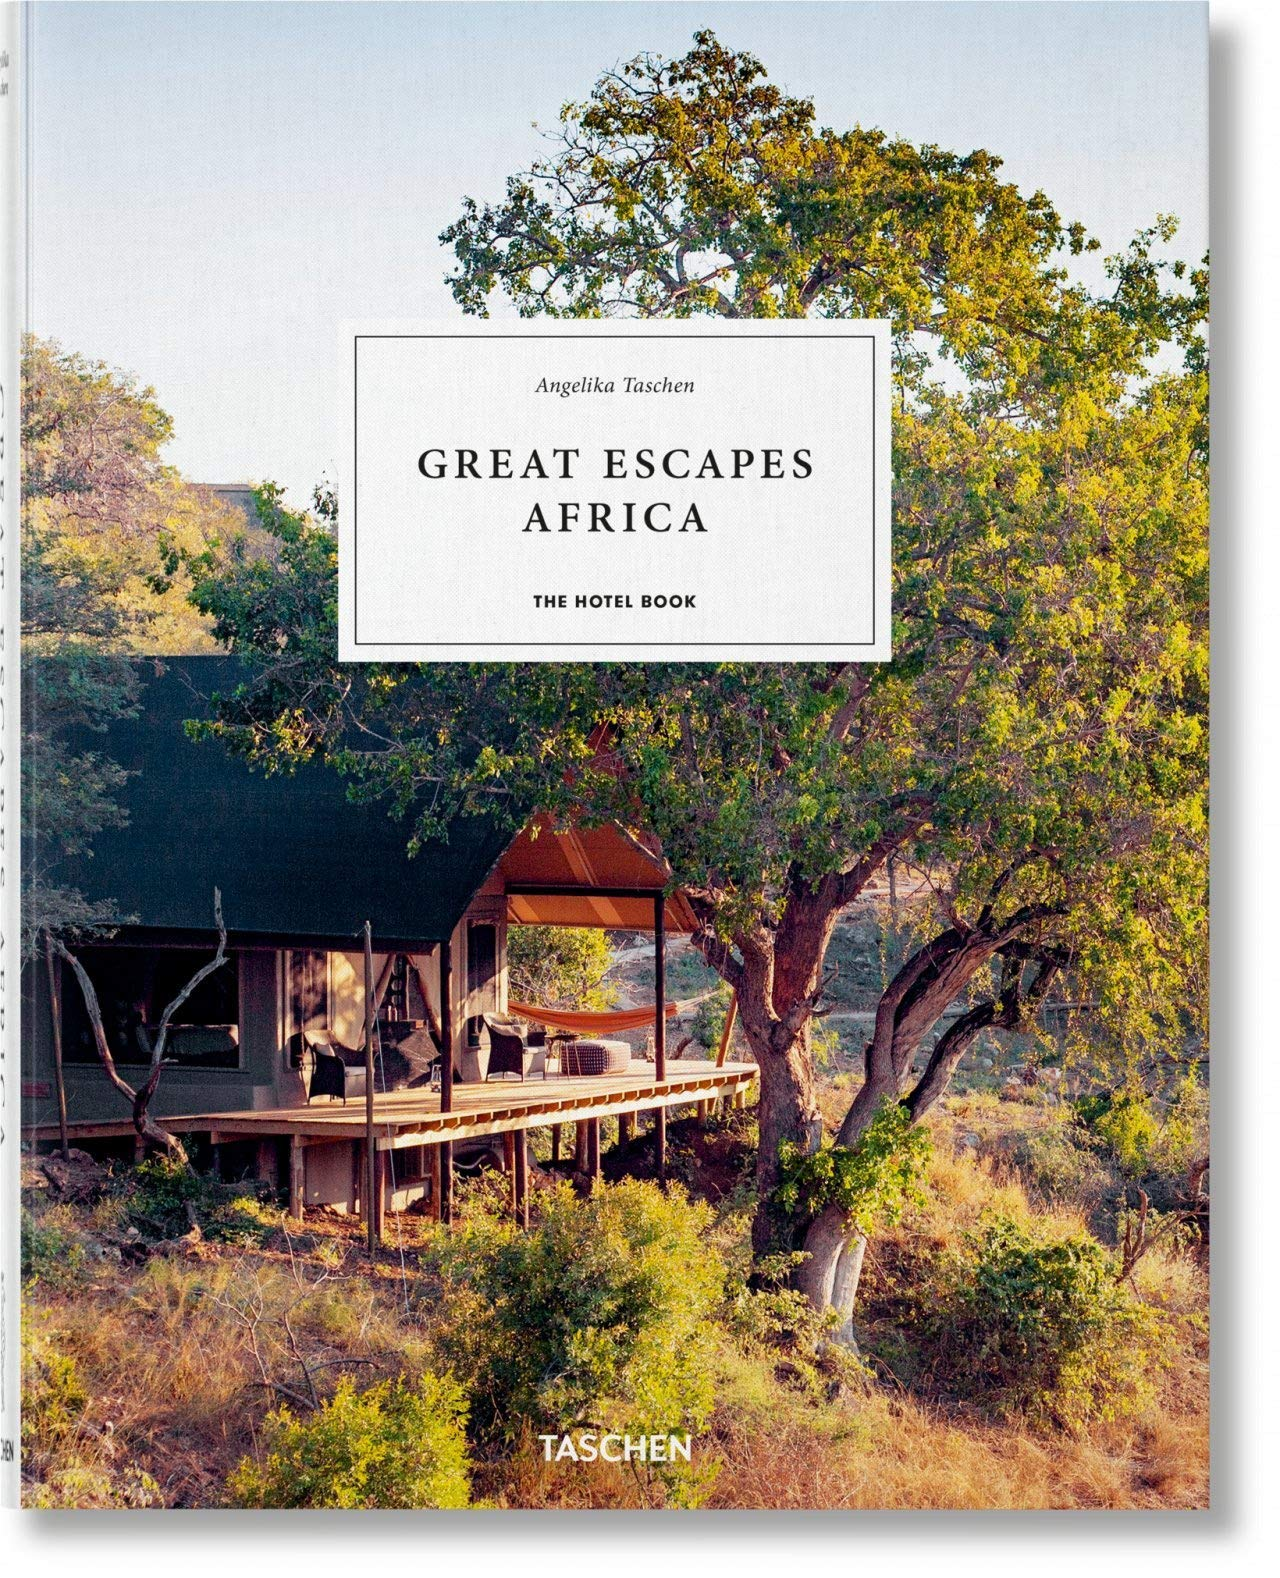 Great escapes Africa: The hotel book